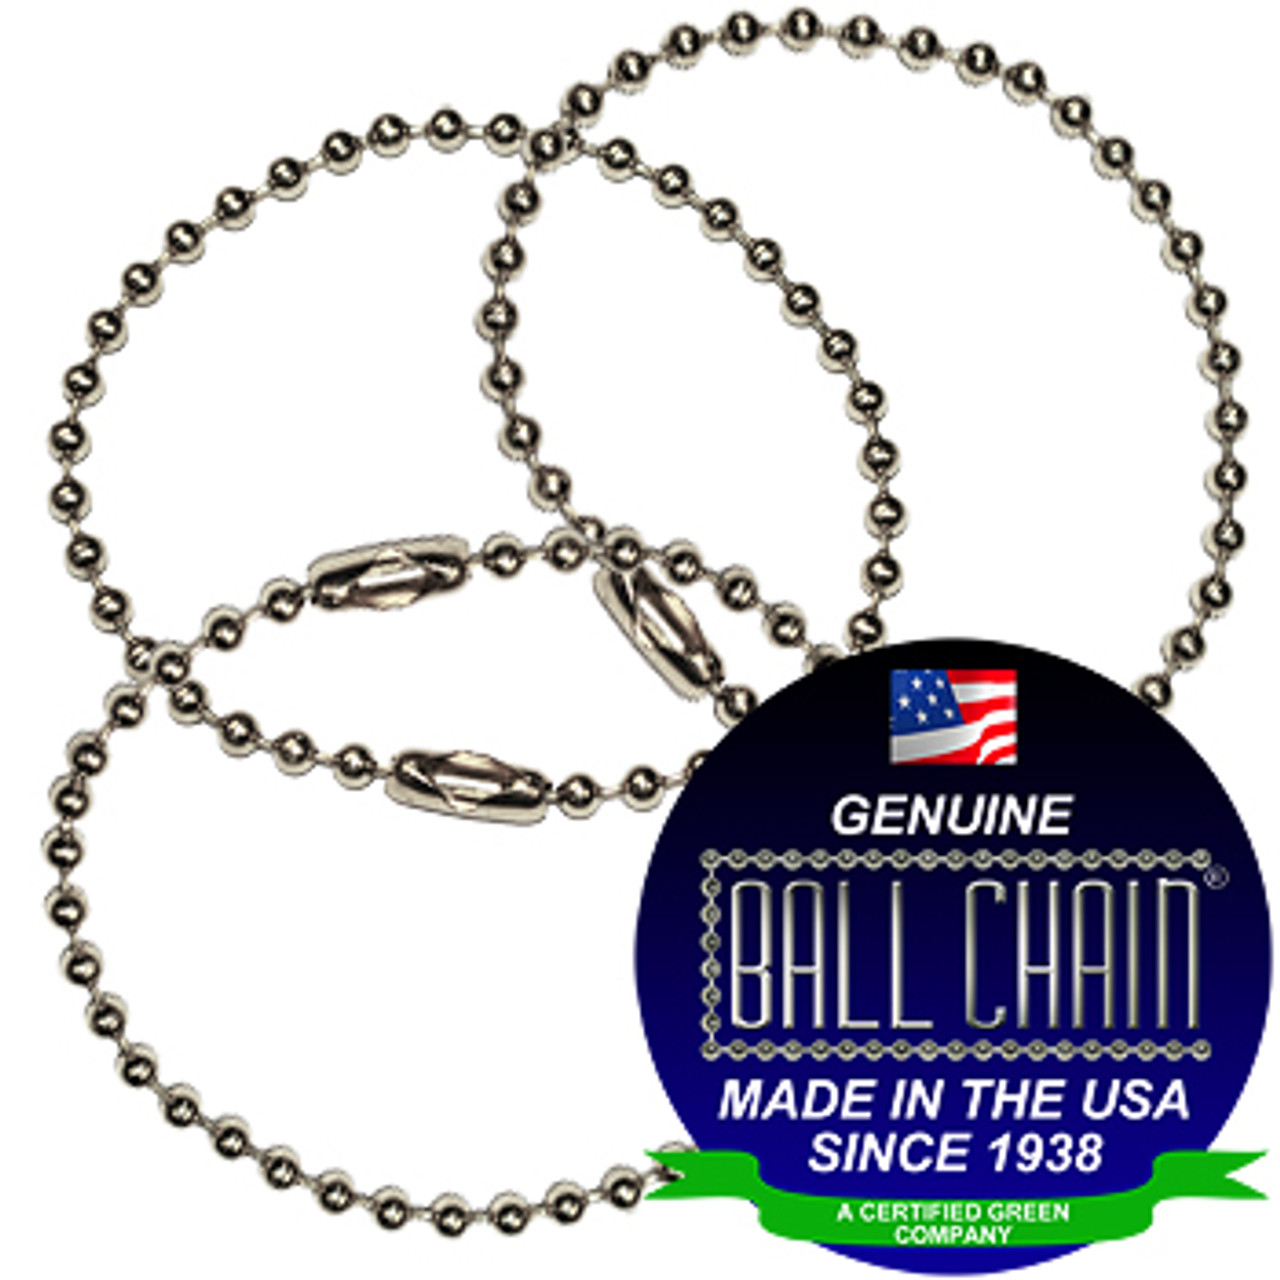 #6 Nickel Plated Steel Key Chains - 4 Inch Length